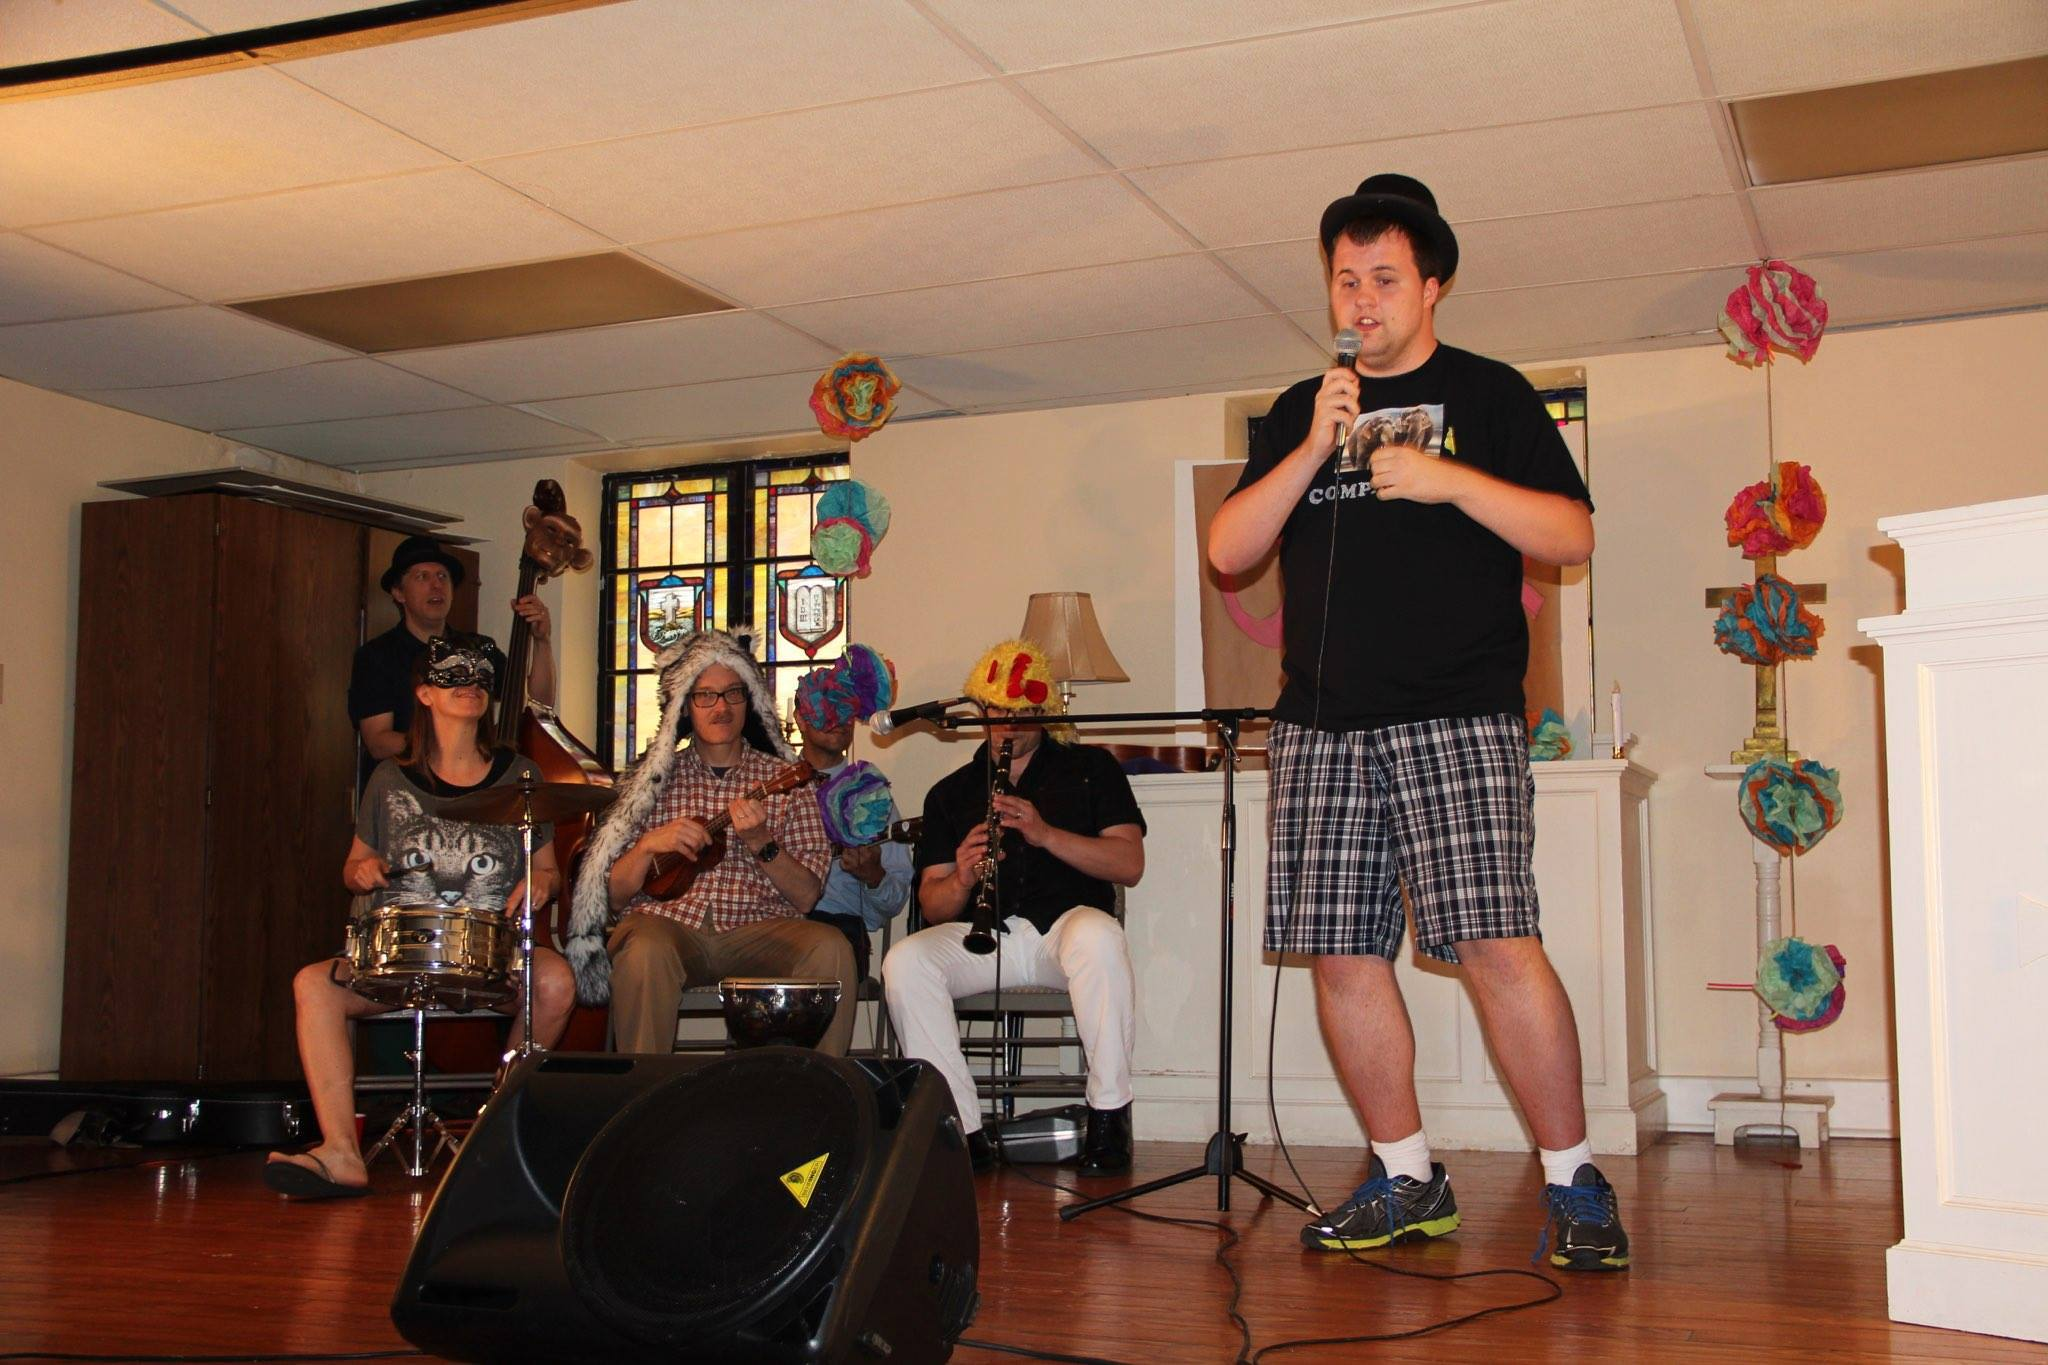 SESSION FIVE: LIVE BAND     The V-Tones   volunteered by playing music for the HEART participants and playing backup band to theirsinging!